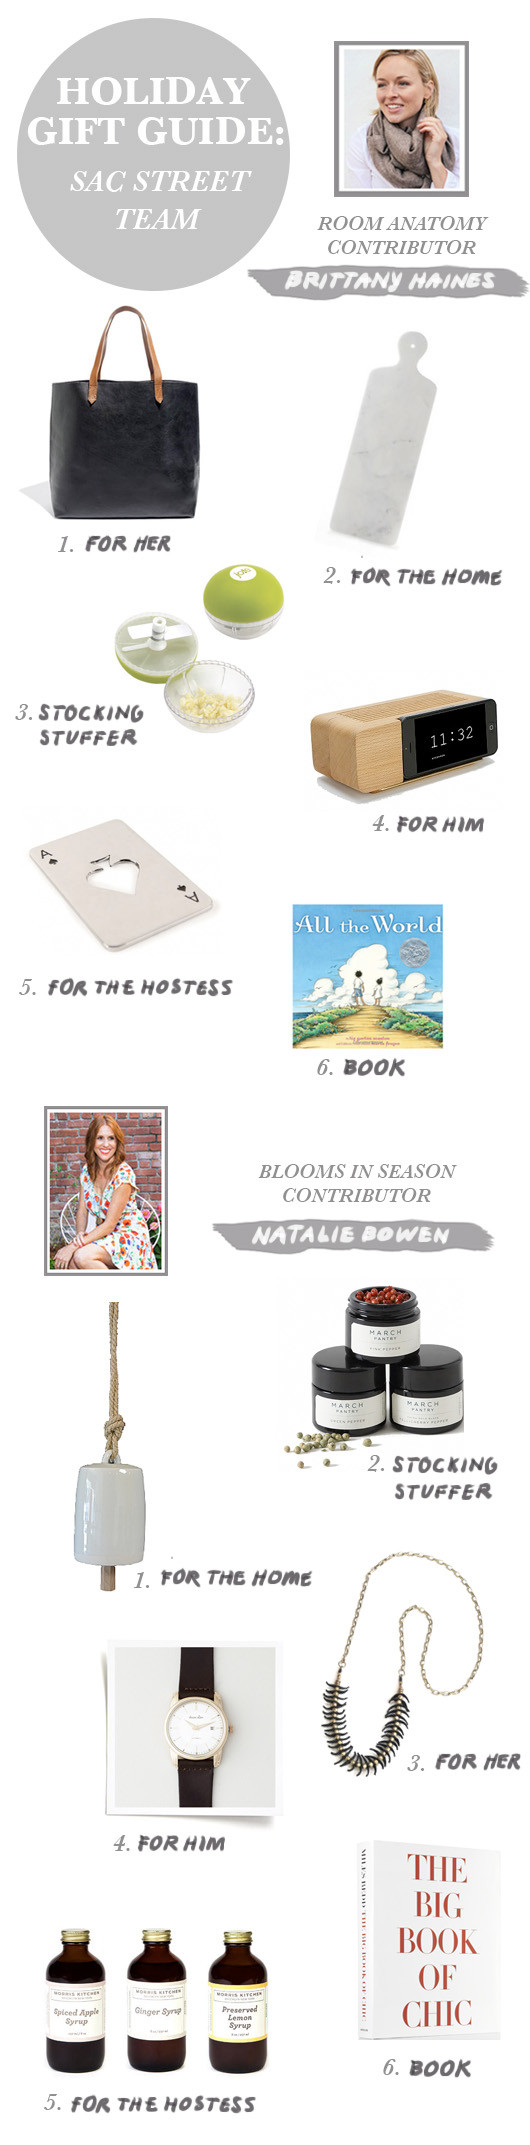 Gift Guide: Sac Street Team (Brittany & Natalie)